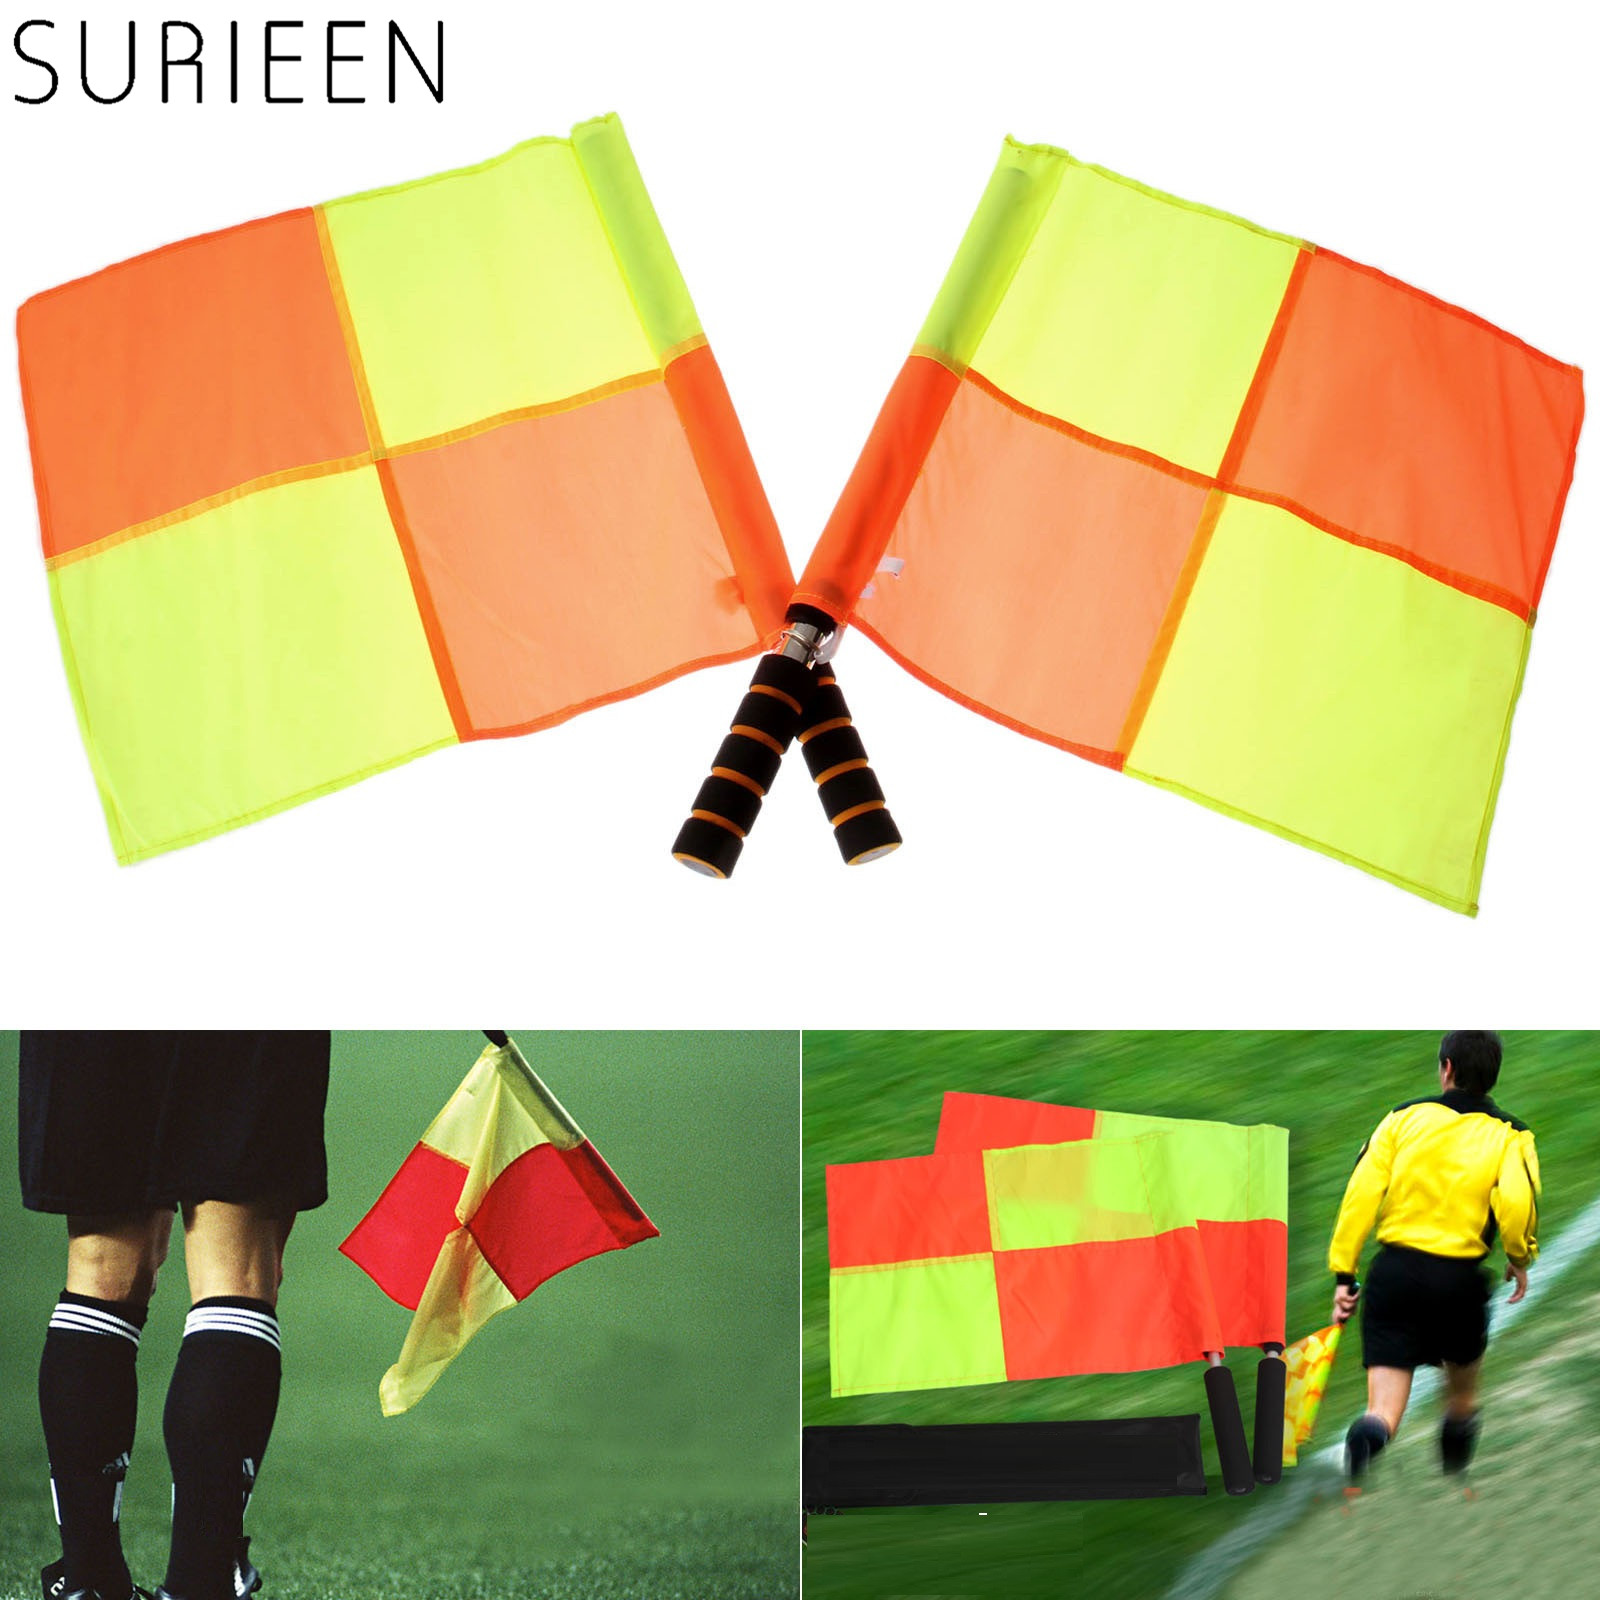 2 Pcs Soccer Referee Flags Balls Sport Match Red-Yellow Quartered Linesman Flag Stainless Steel Flagstaff Football Referee Equip